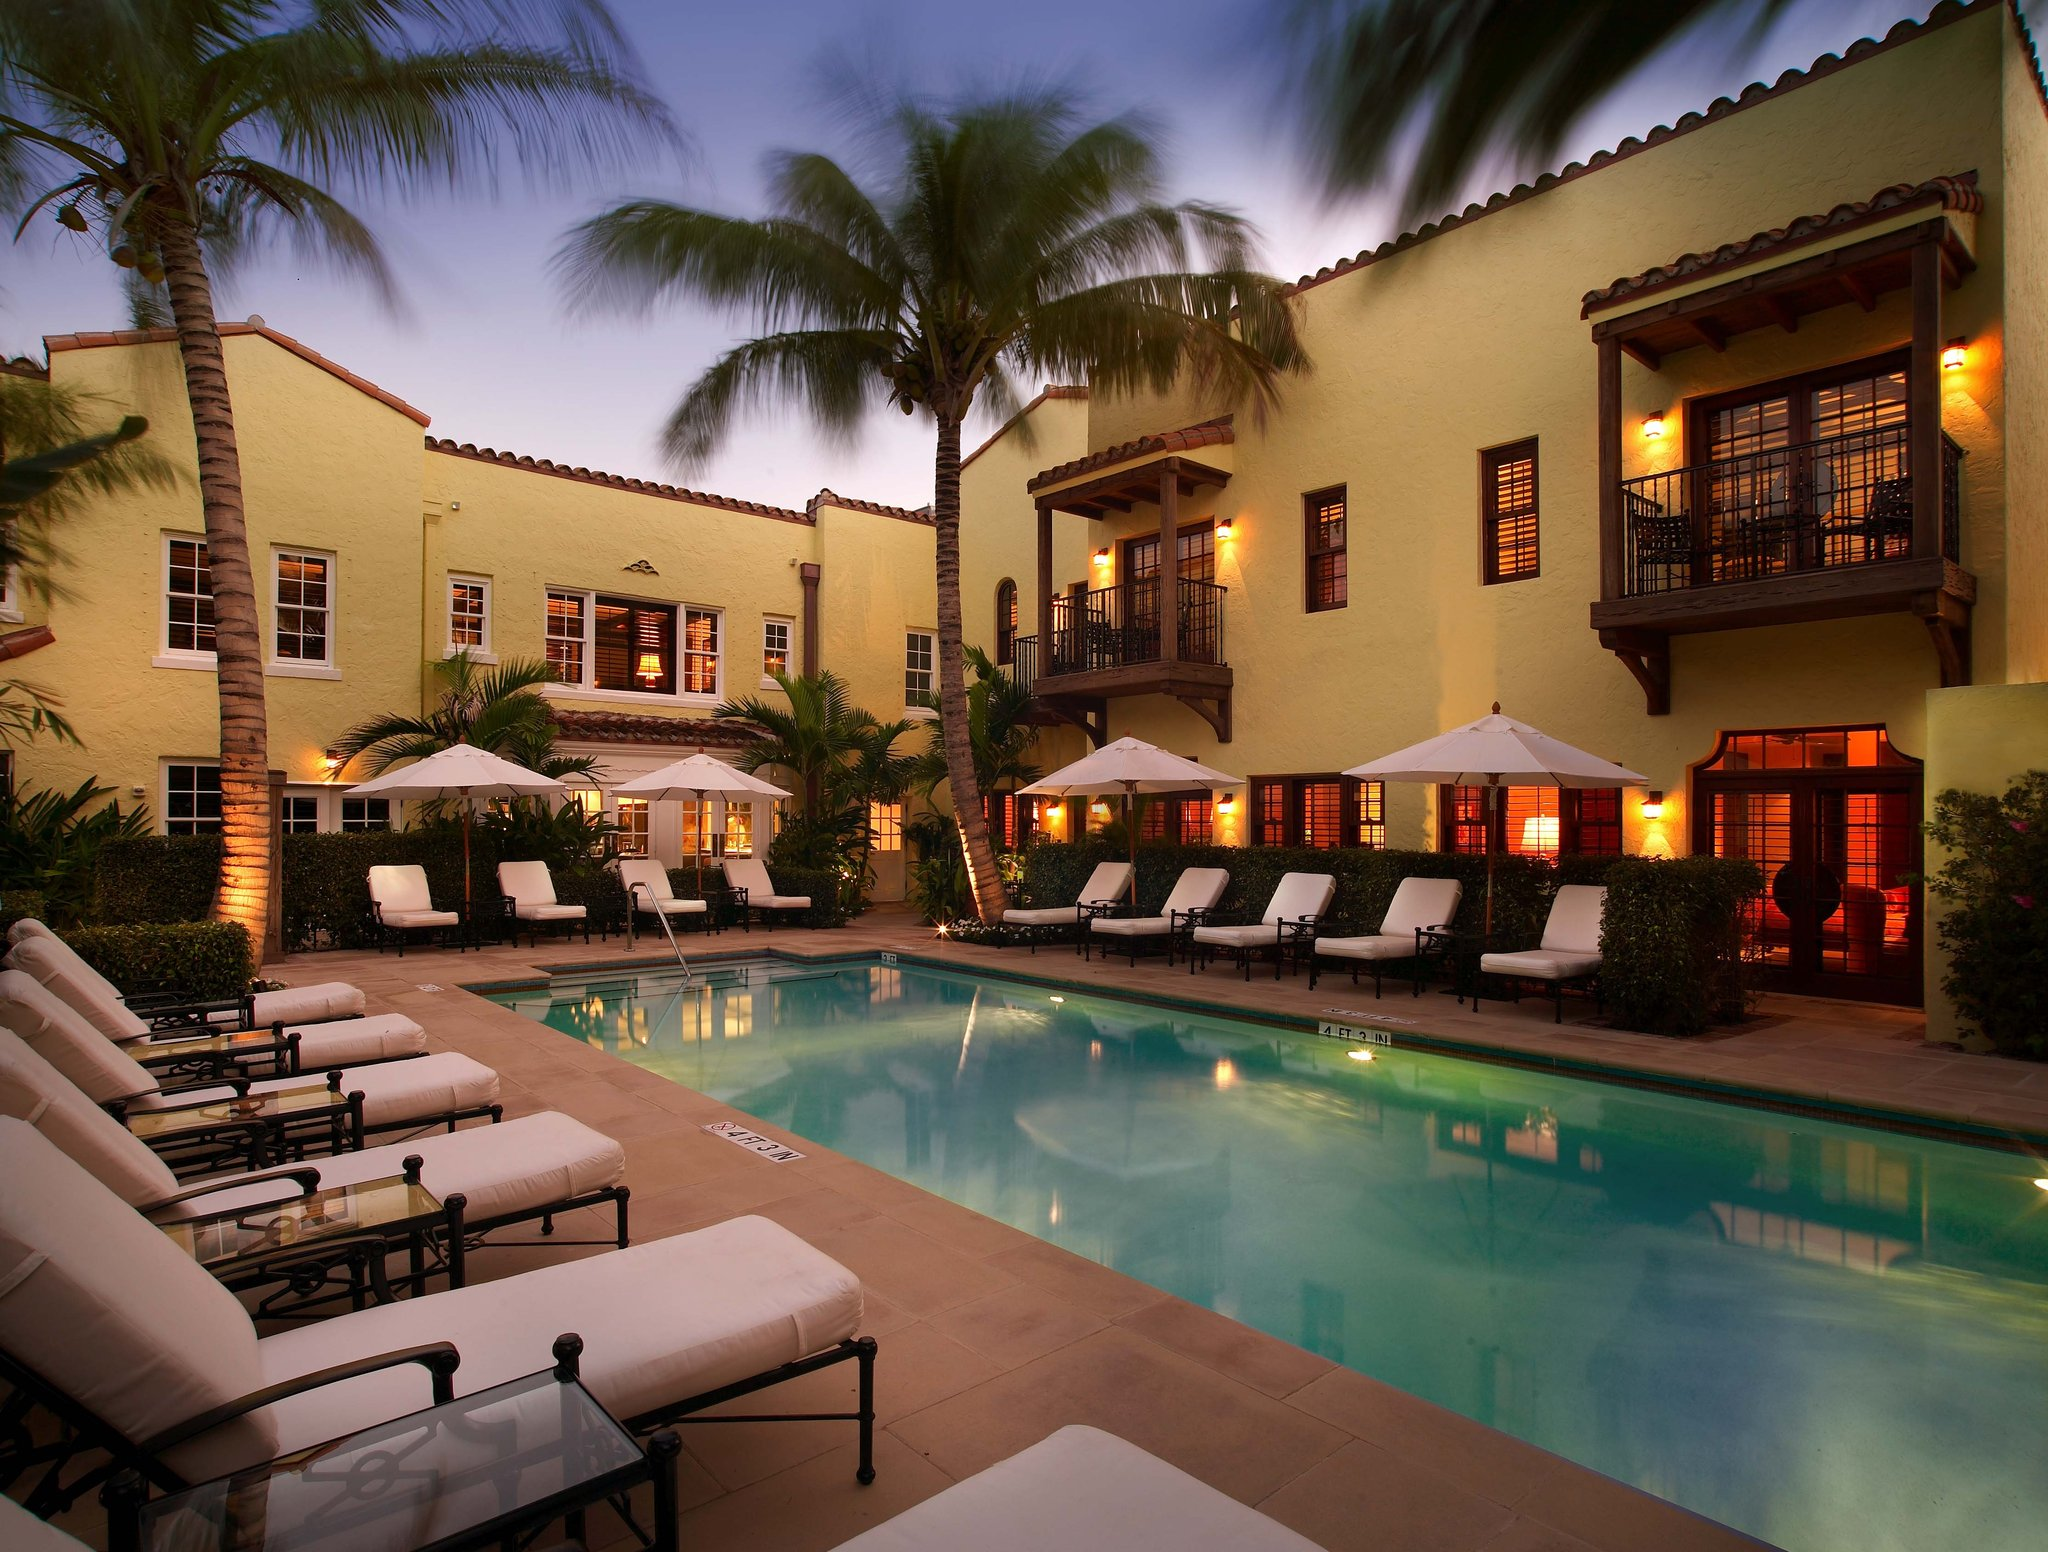 Meetings and Events at The Brazilian Court Hotel, Palm Beach, FL, US